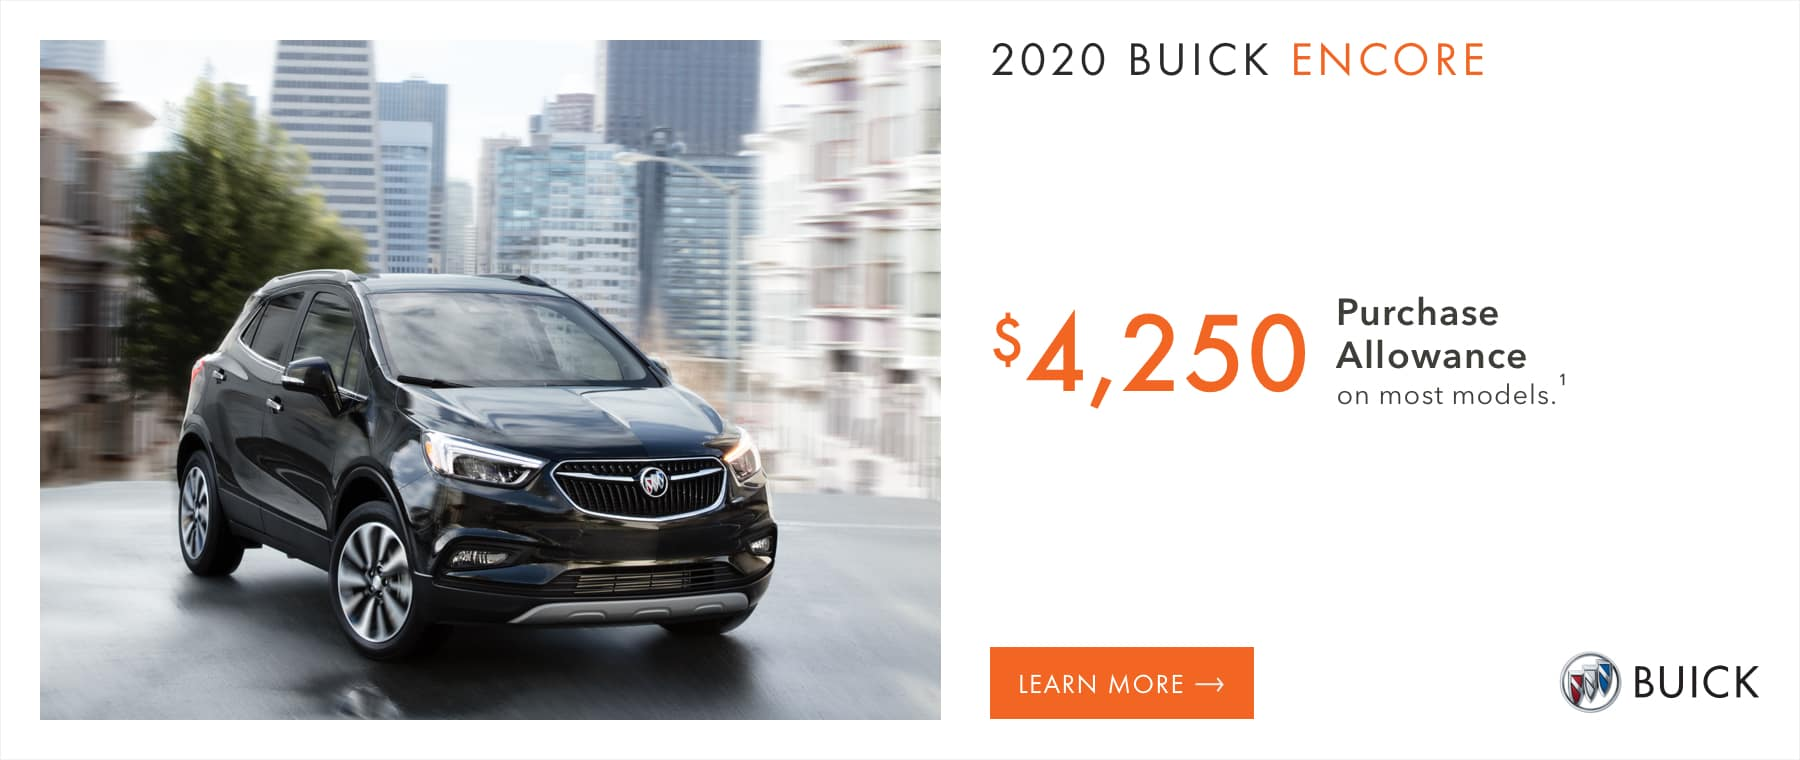 Most 2020 Buick Encore Models - $4,250 Purchase Allowance